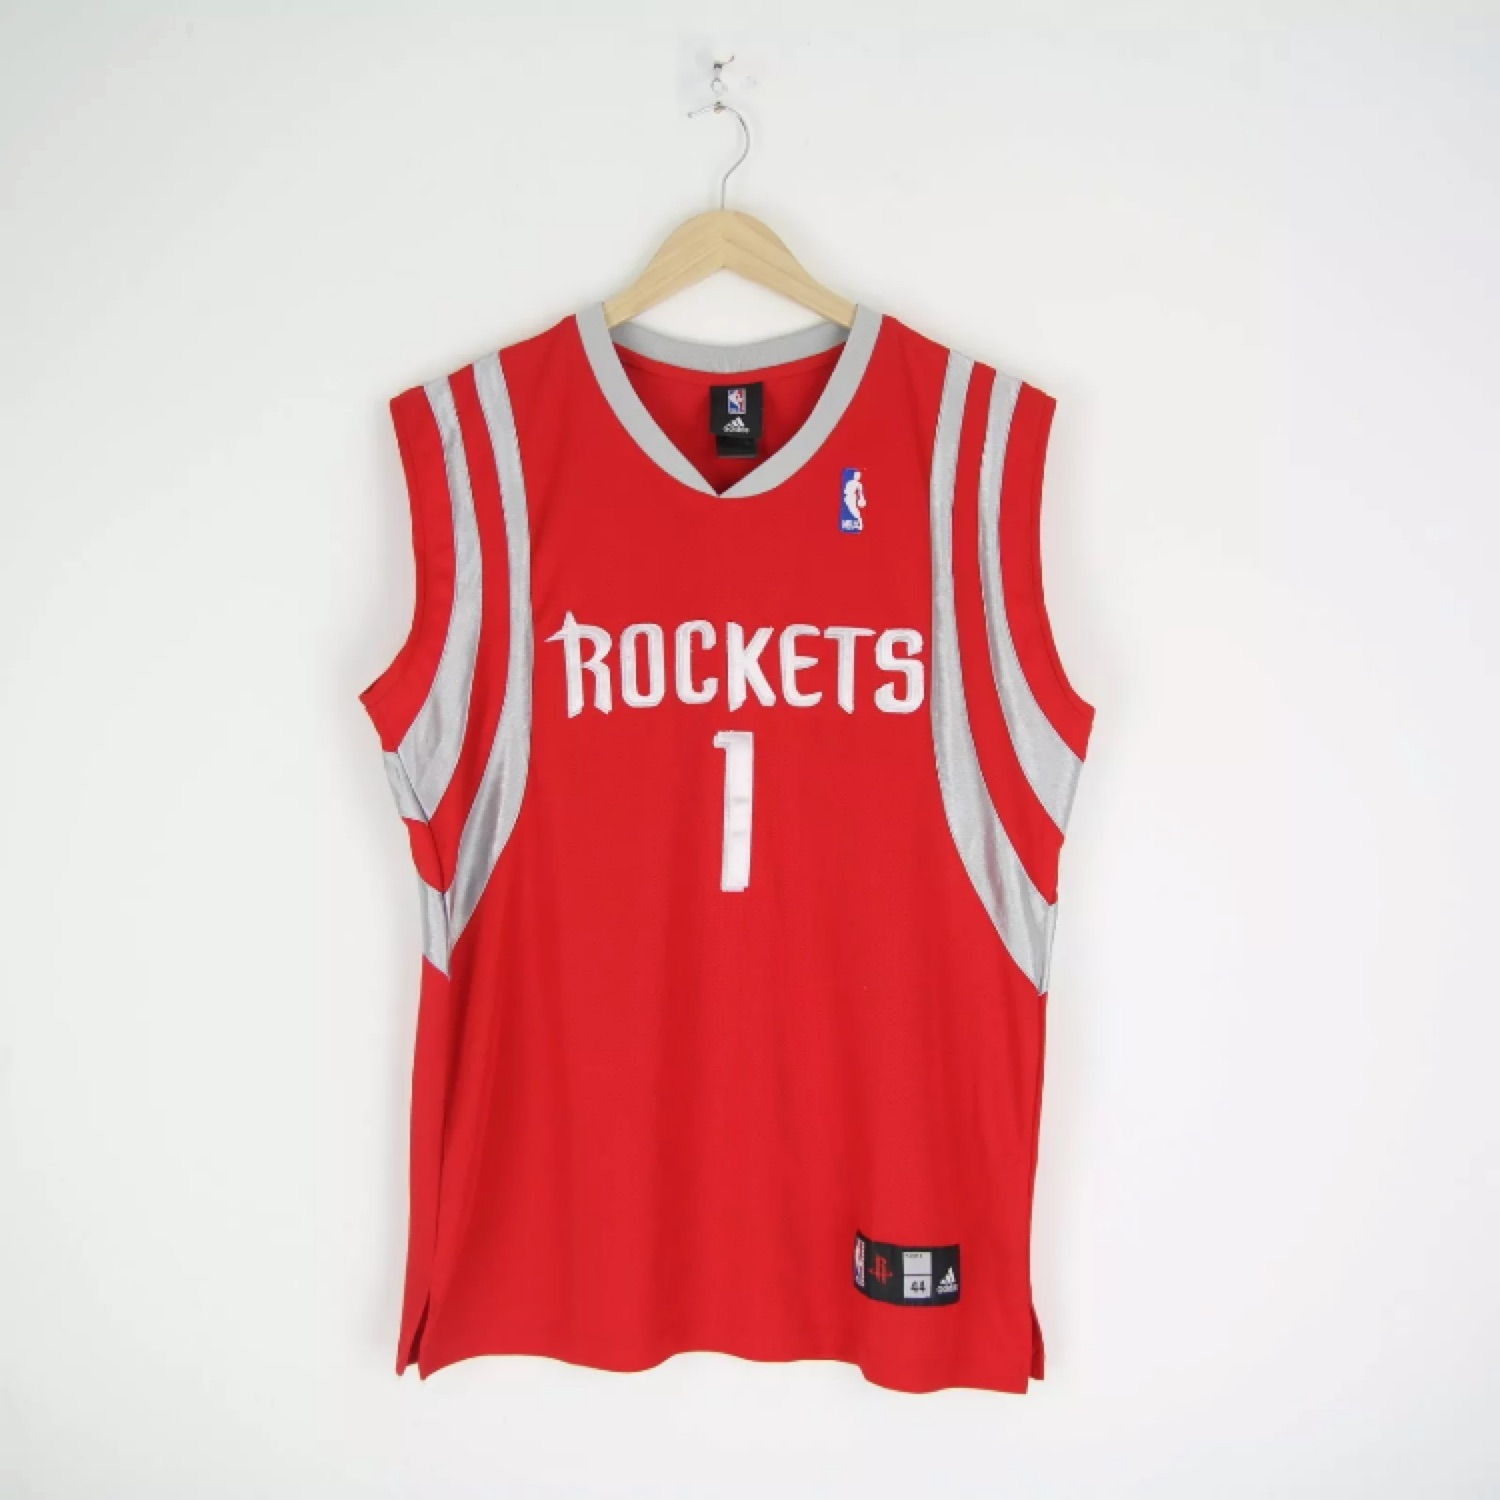 sale retailer 76440 6d567 Adidas Houston Rockets Tracy Mcgrady Jersey Shirt